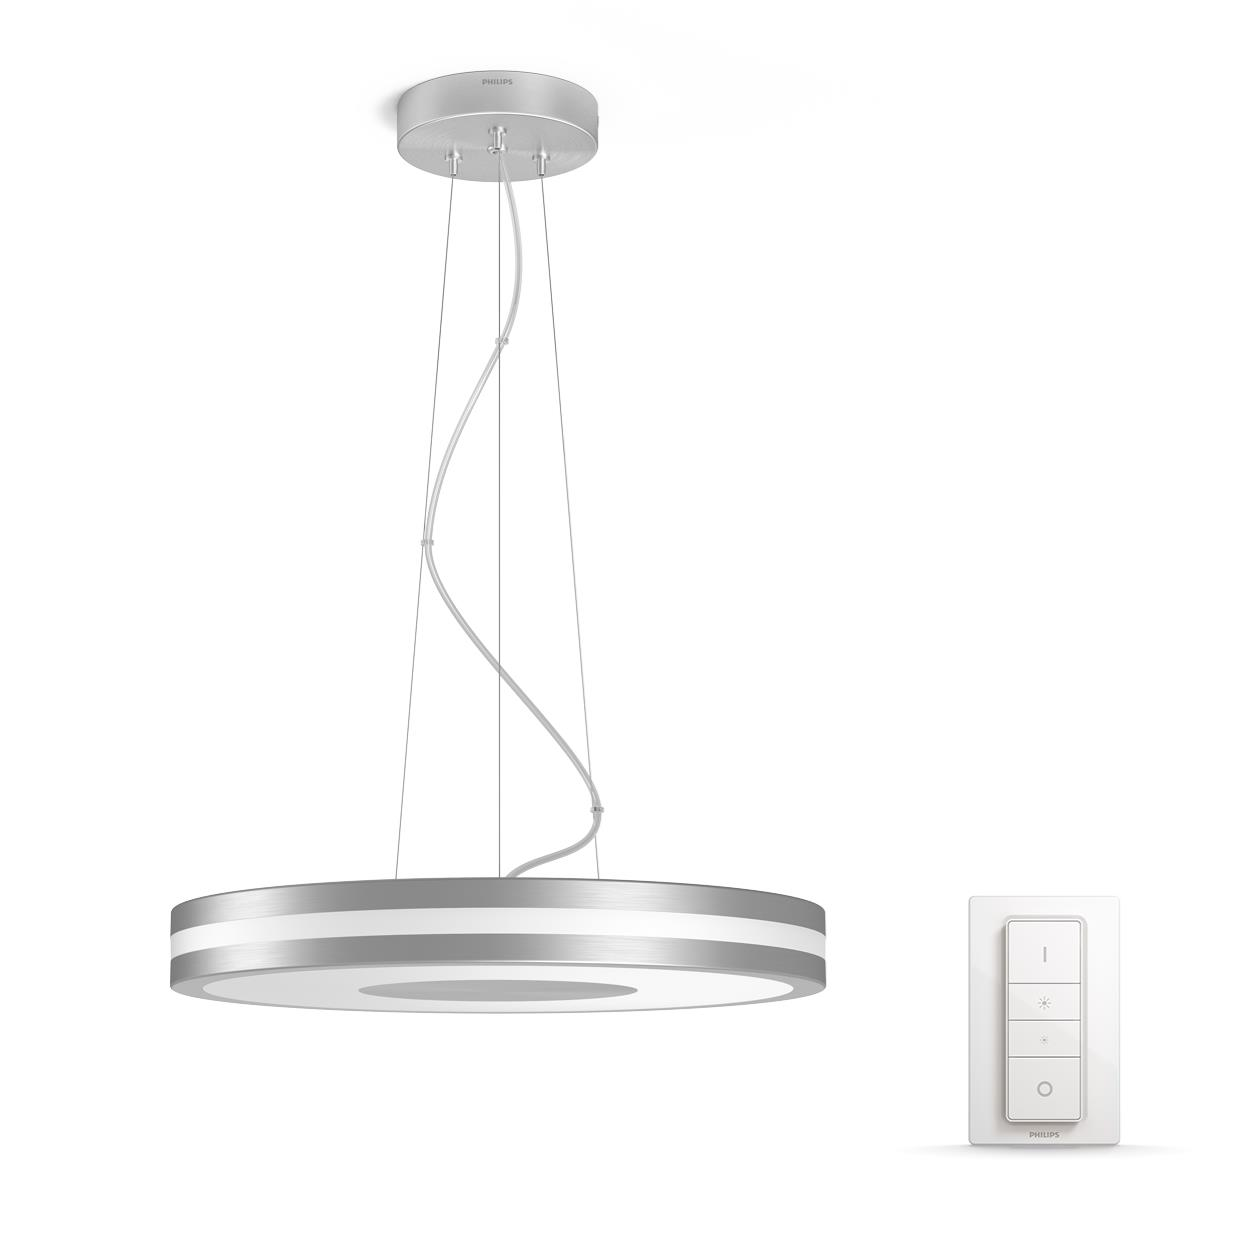 Philips Hue - Being Pendant Lamp Silver (Dimmer Included) - White Ambiance - E